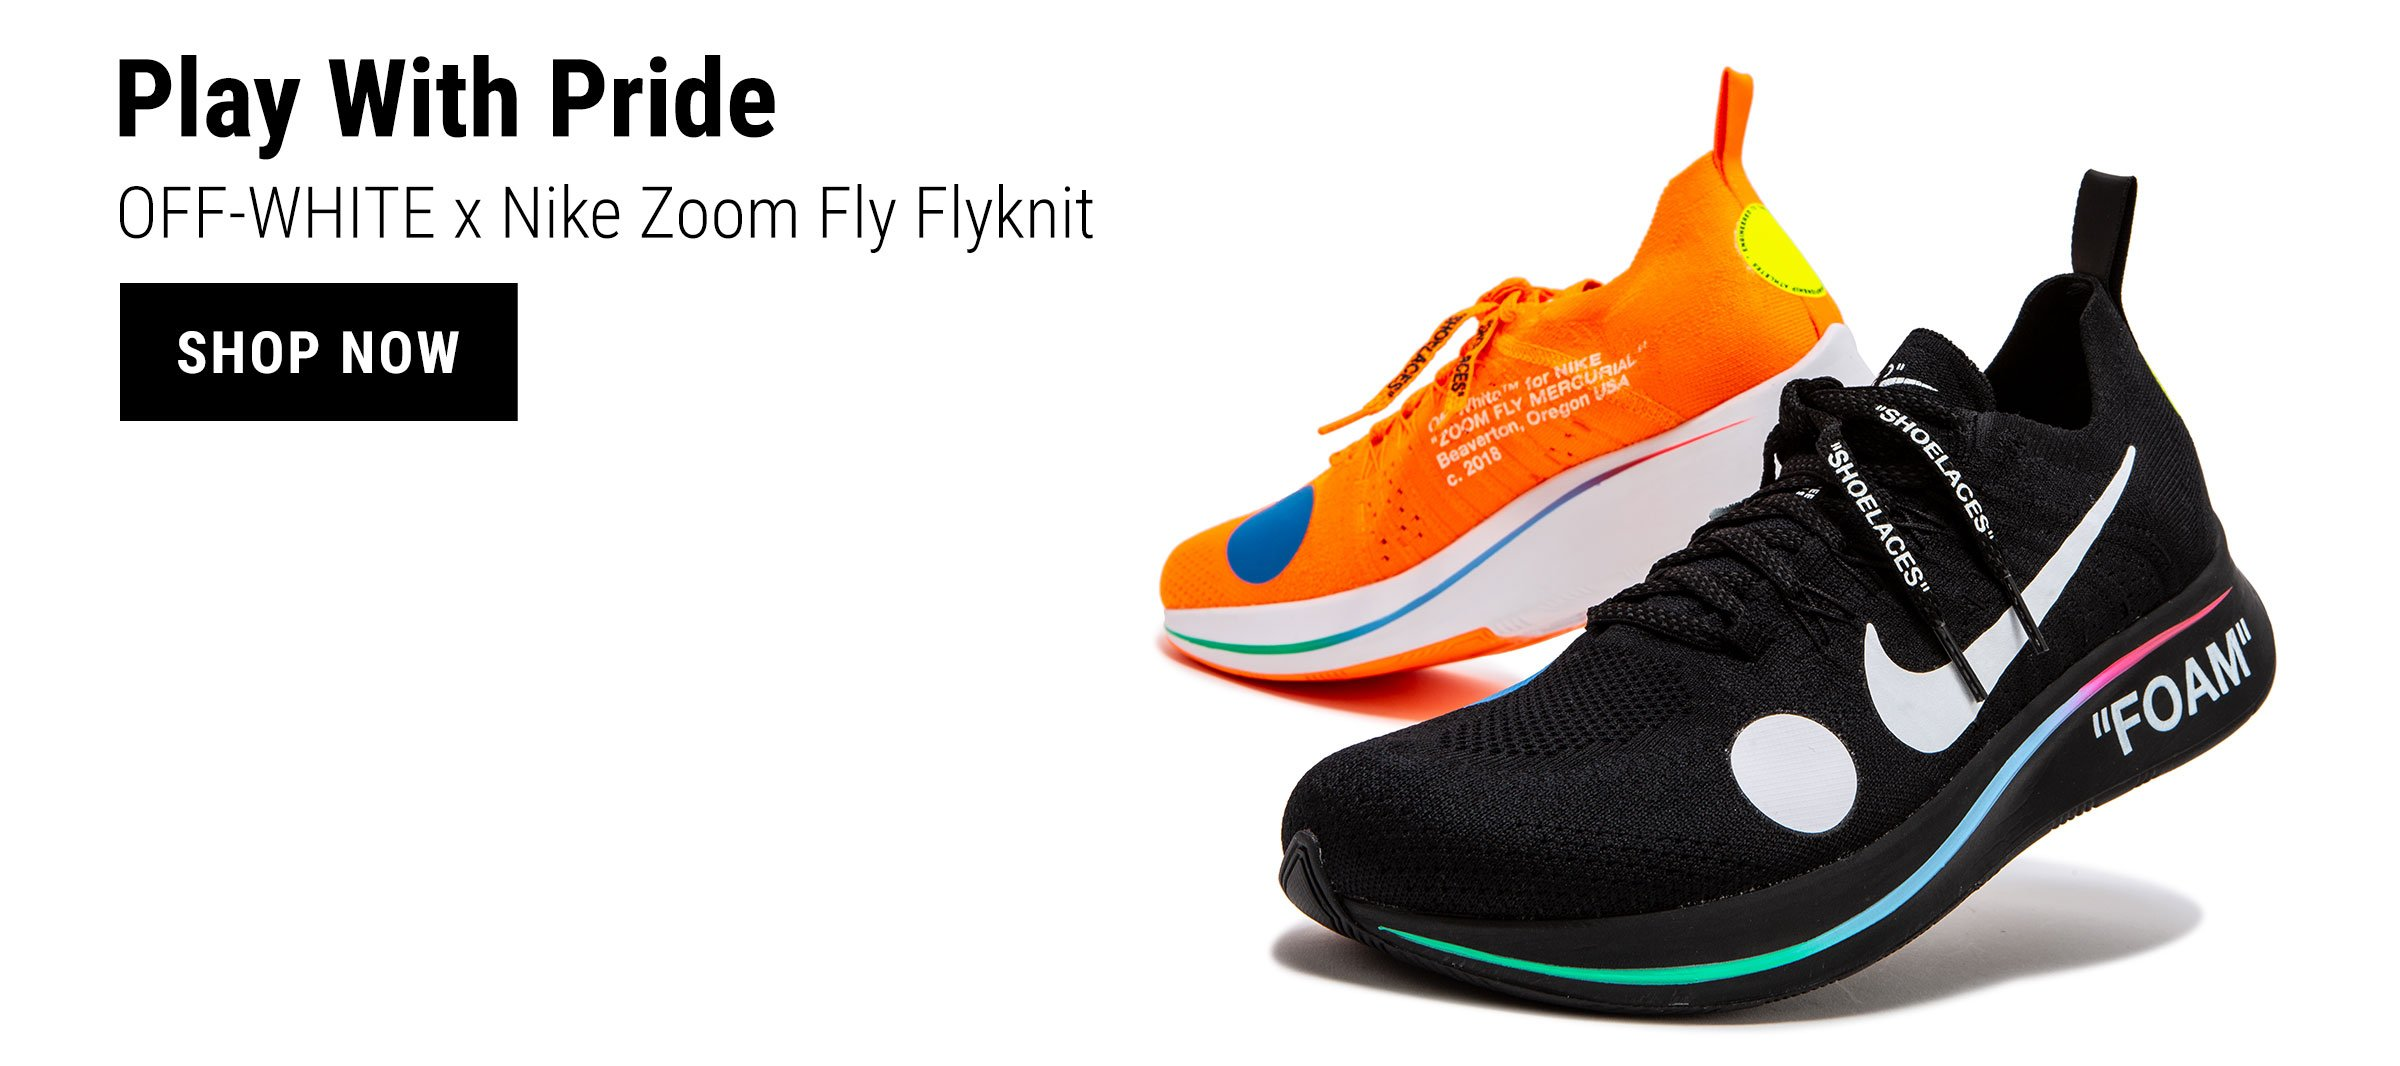 new product 6f497 3d99b OFF-WHITE x Nike Zoom Fly Flyknit